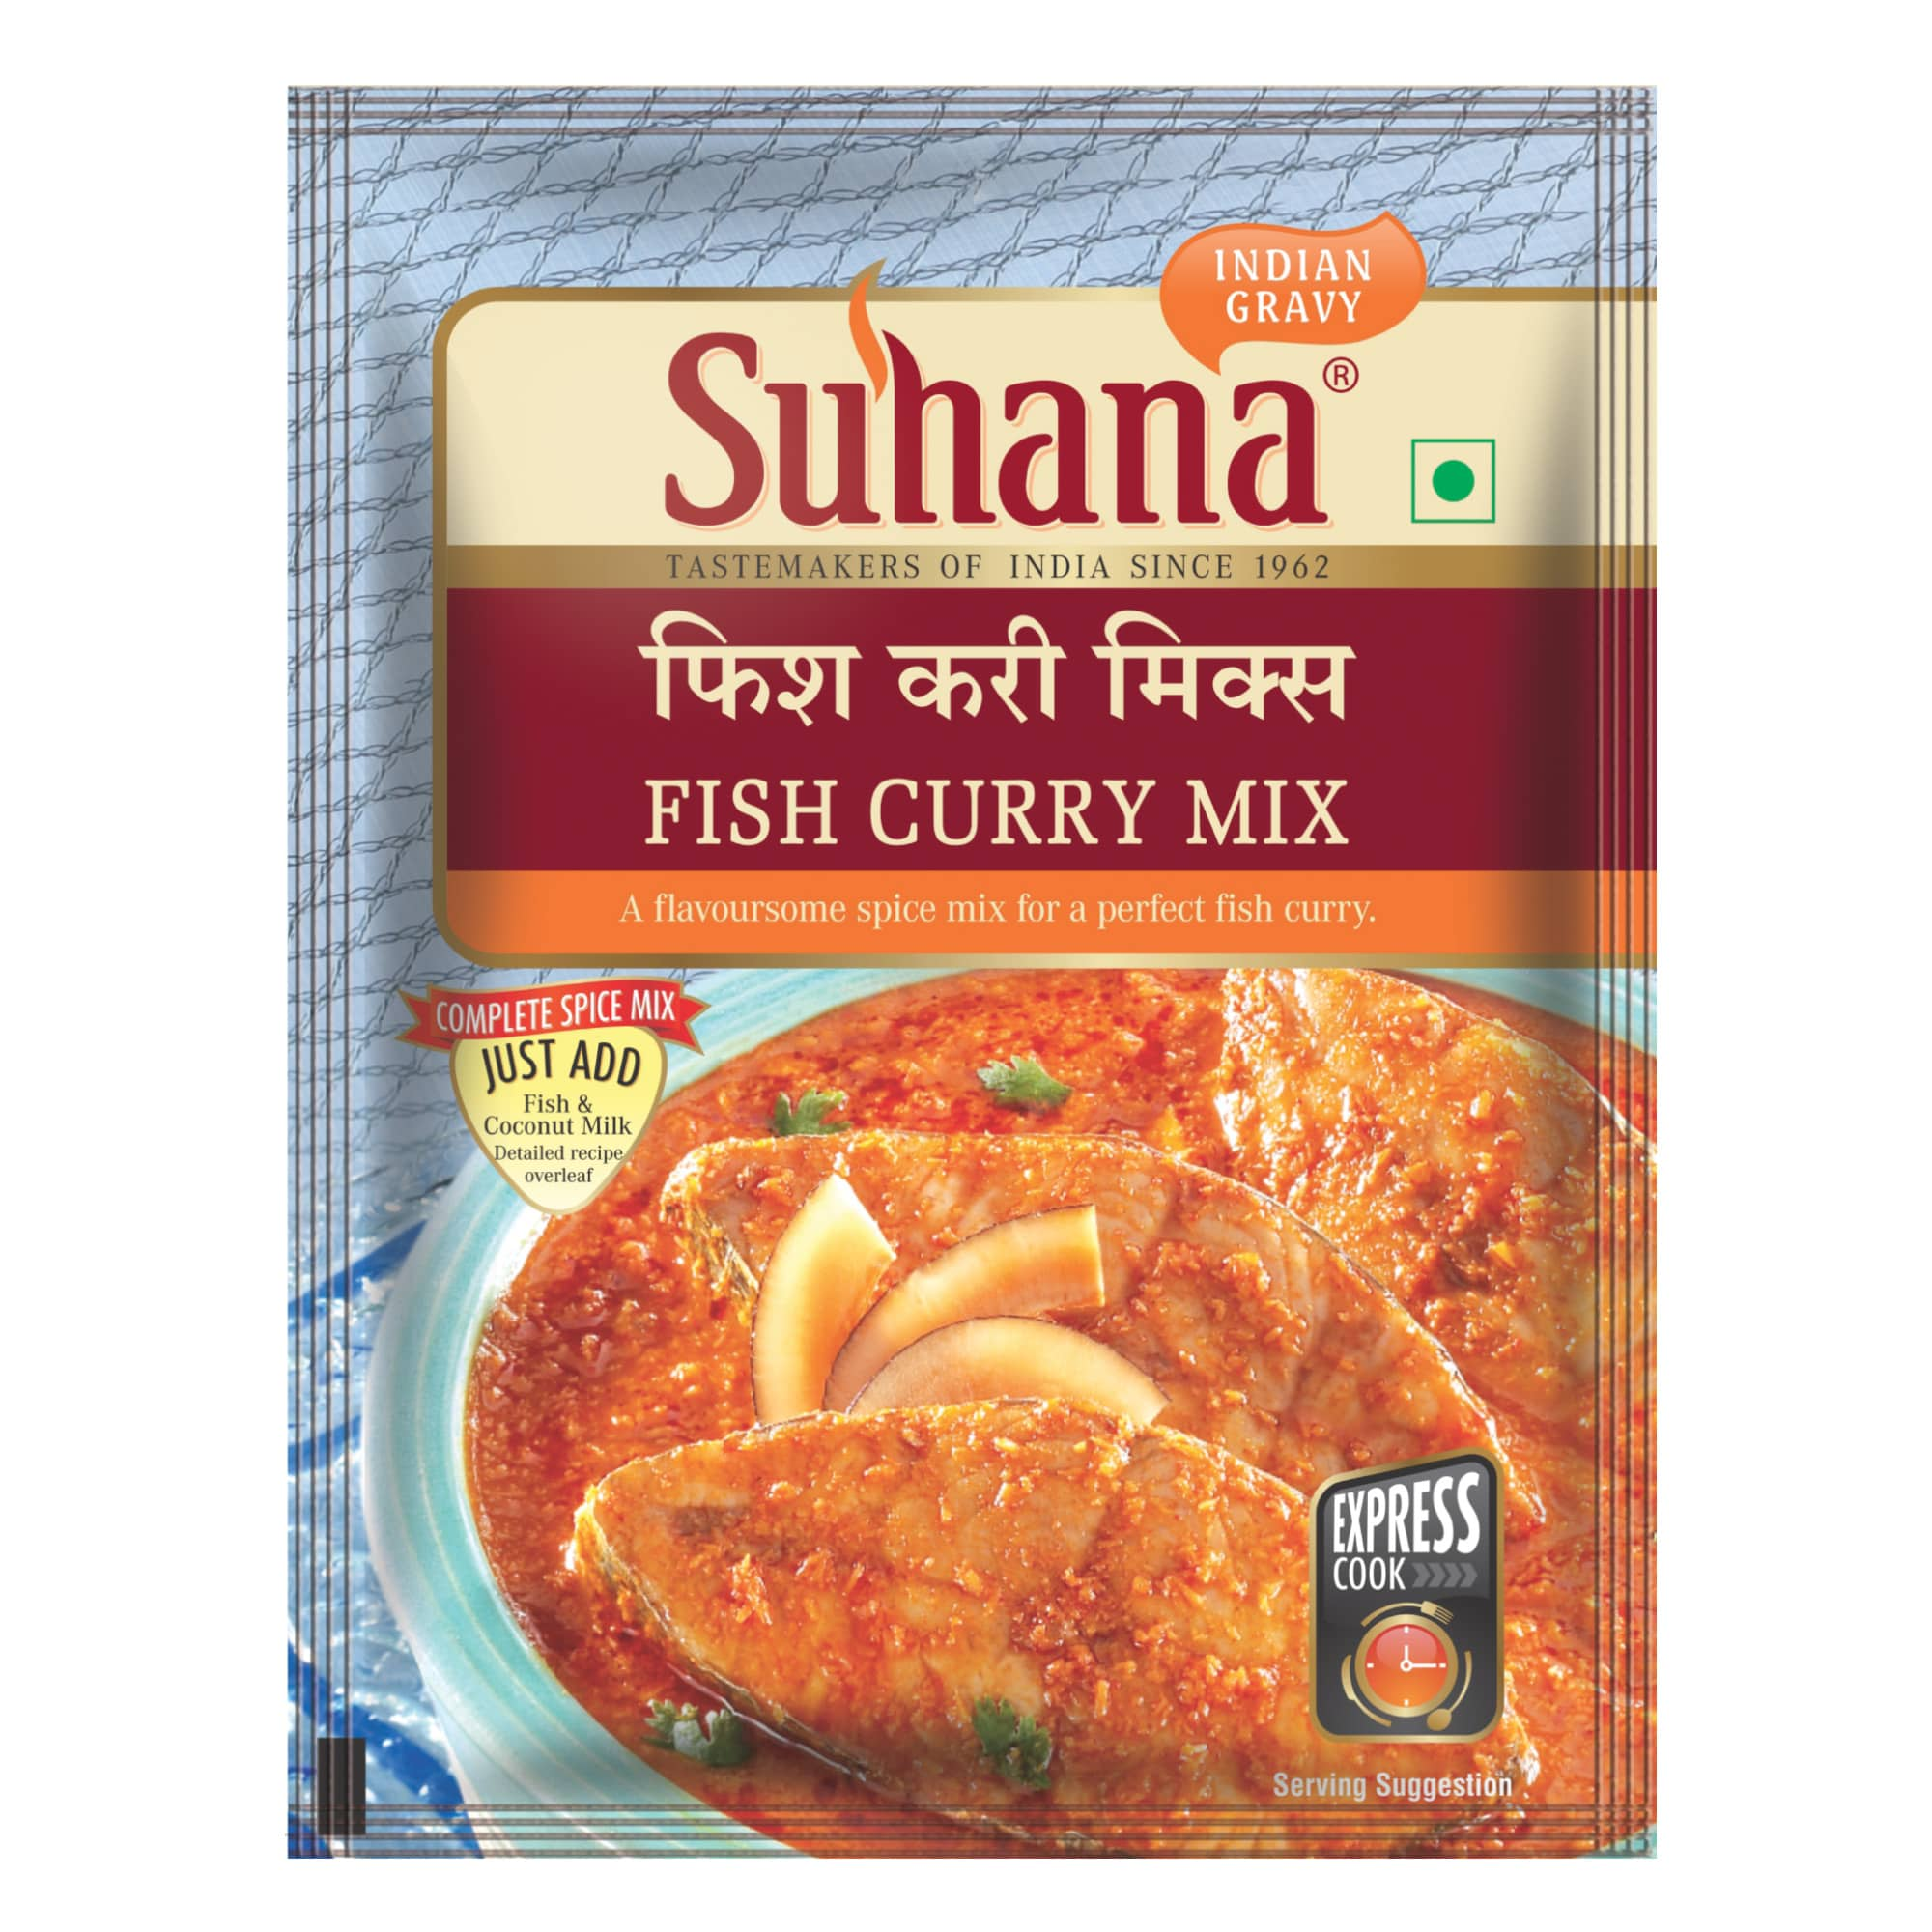 Suhana Fish Curry Spice Mix 50g Pouch